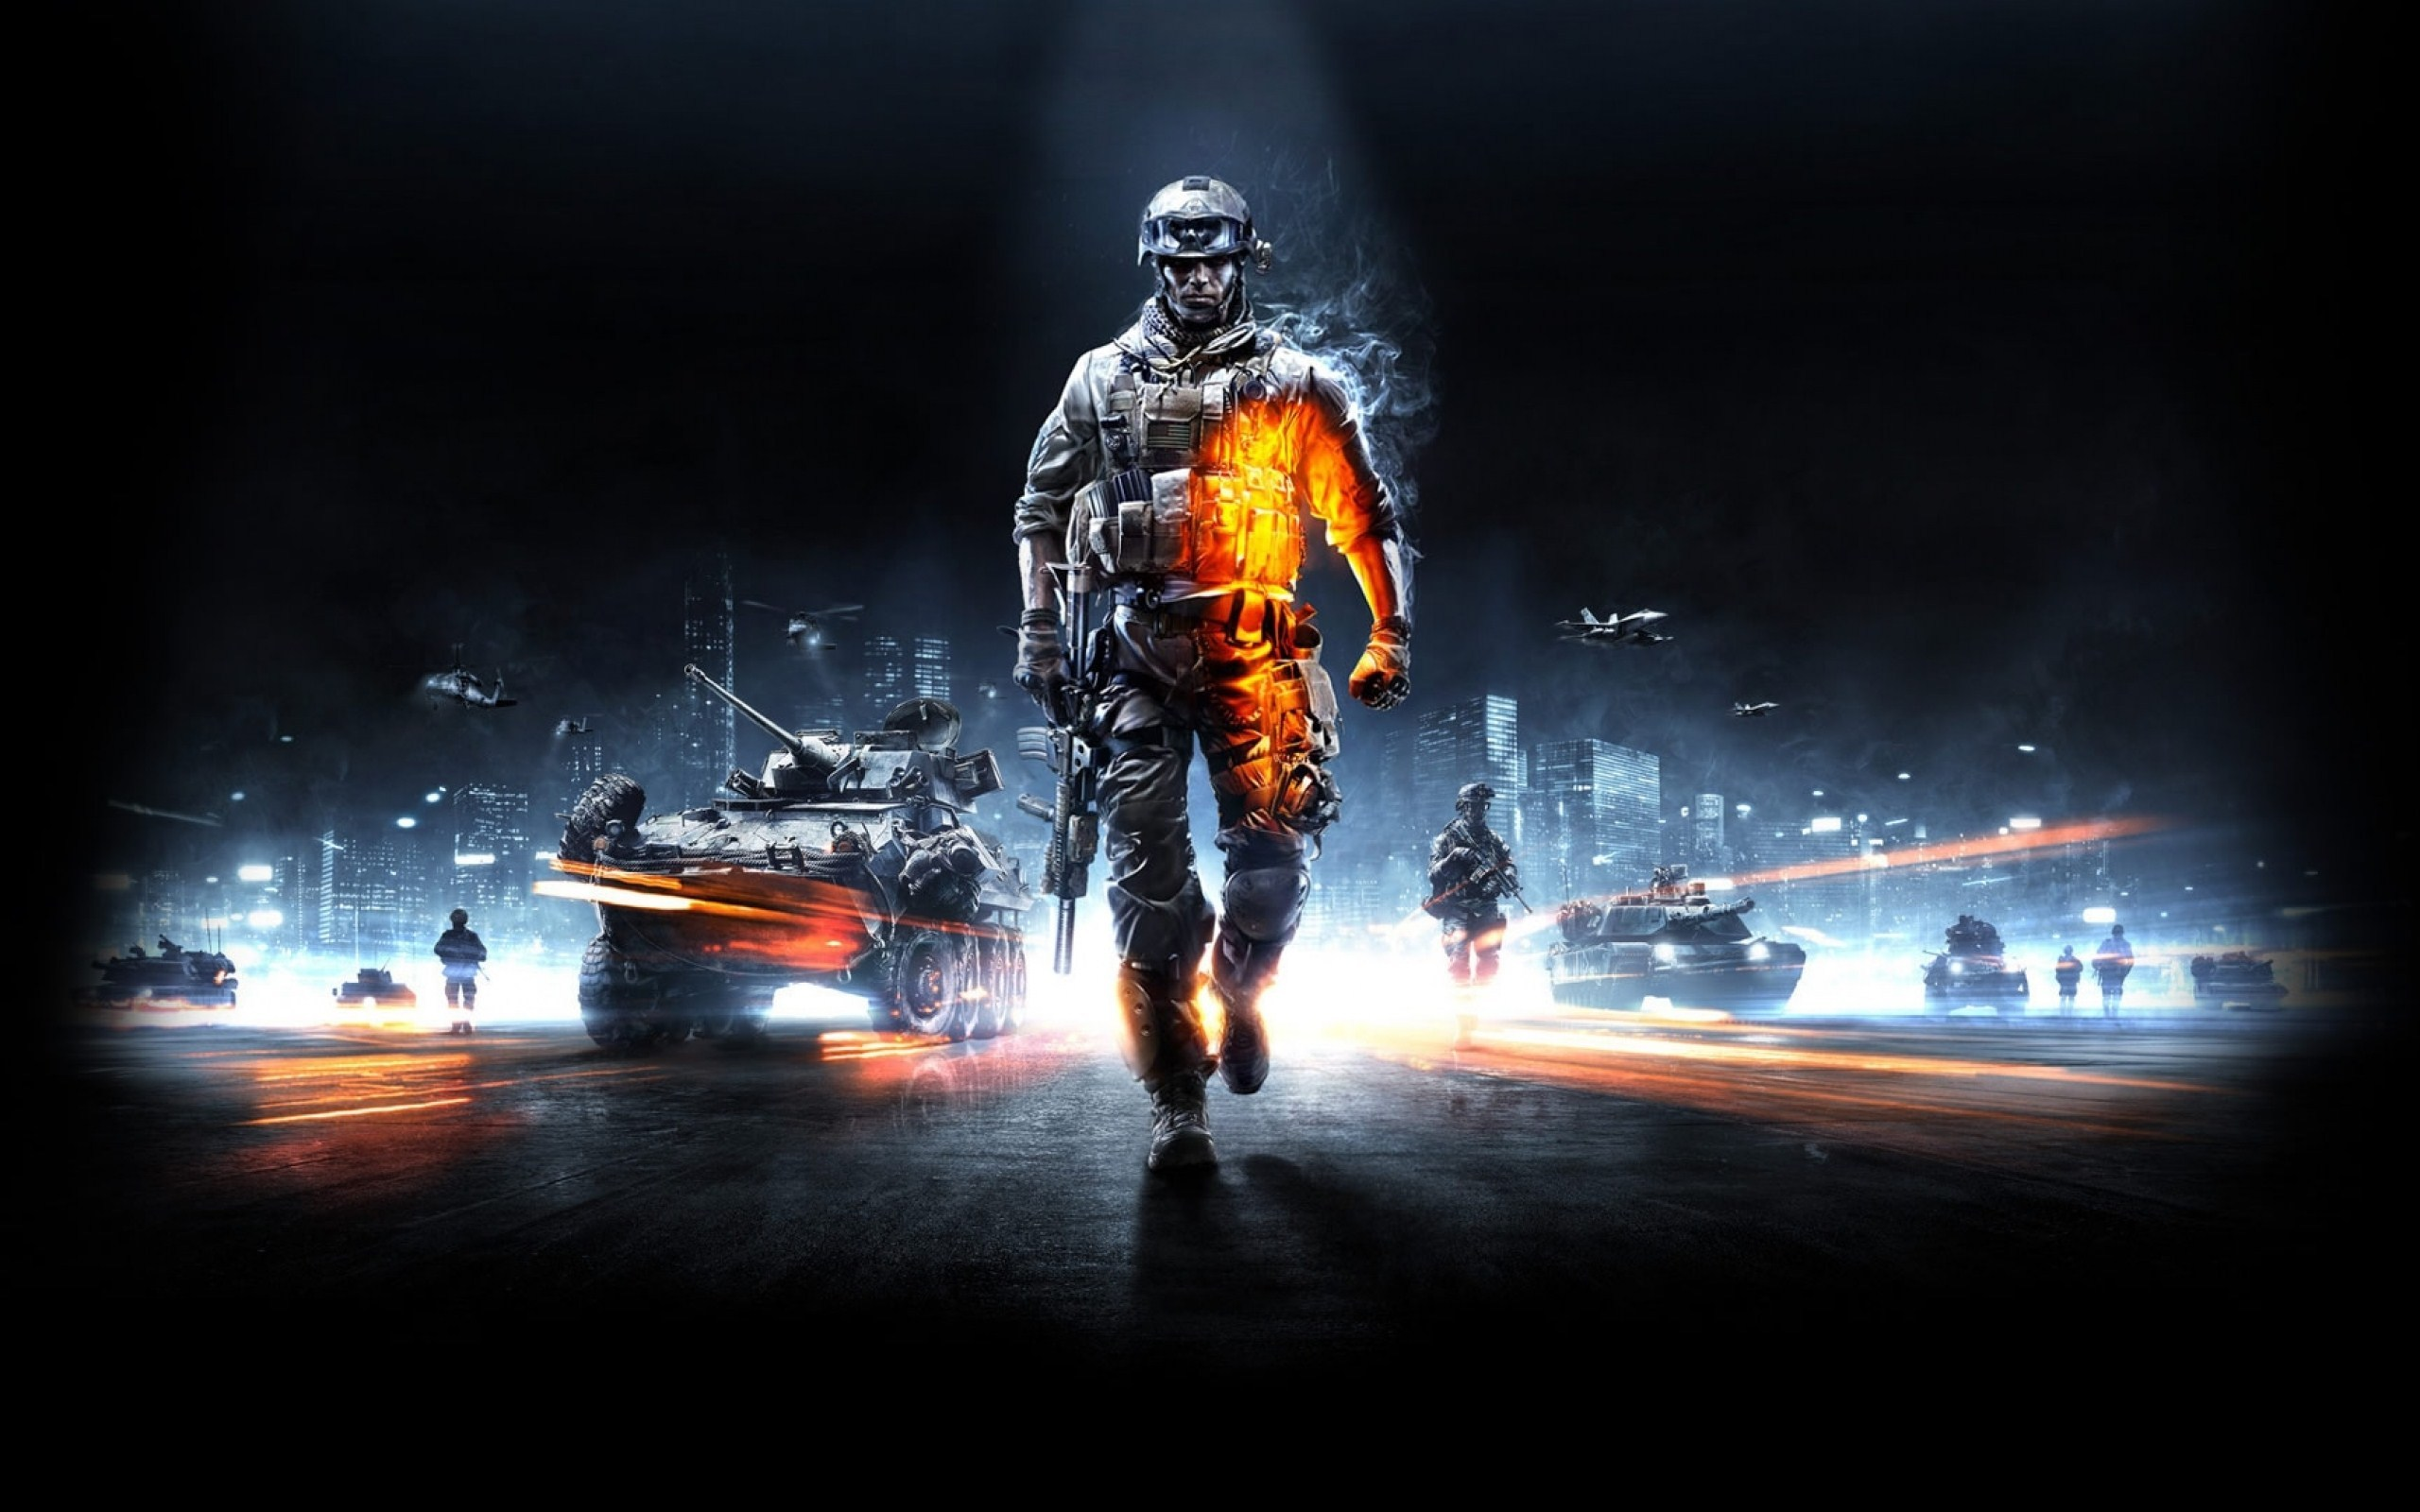 21620 download wallpaper Games, Battlefield screensavers and pictures for free